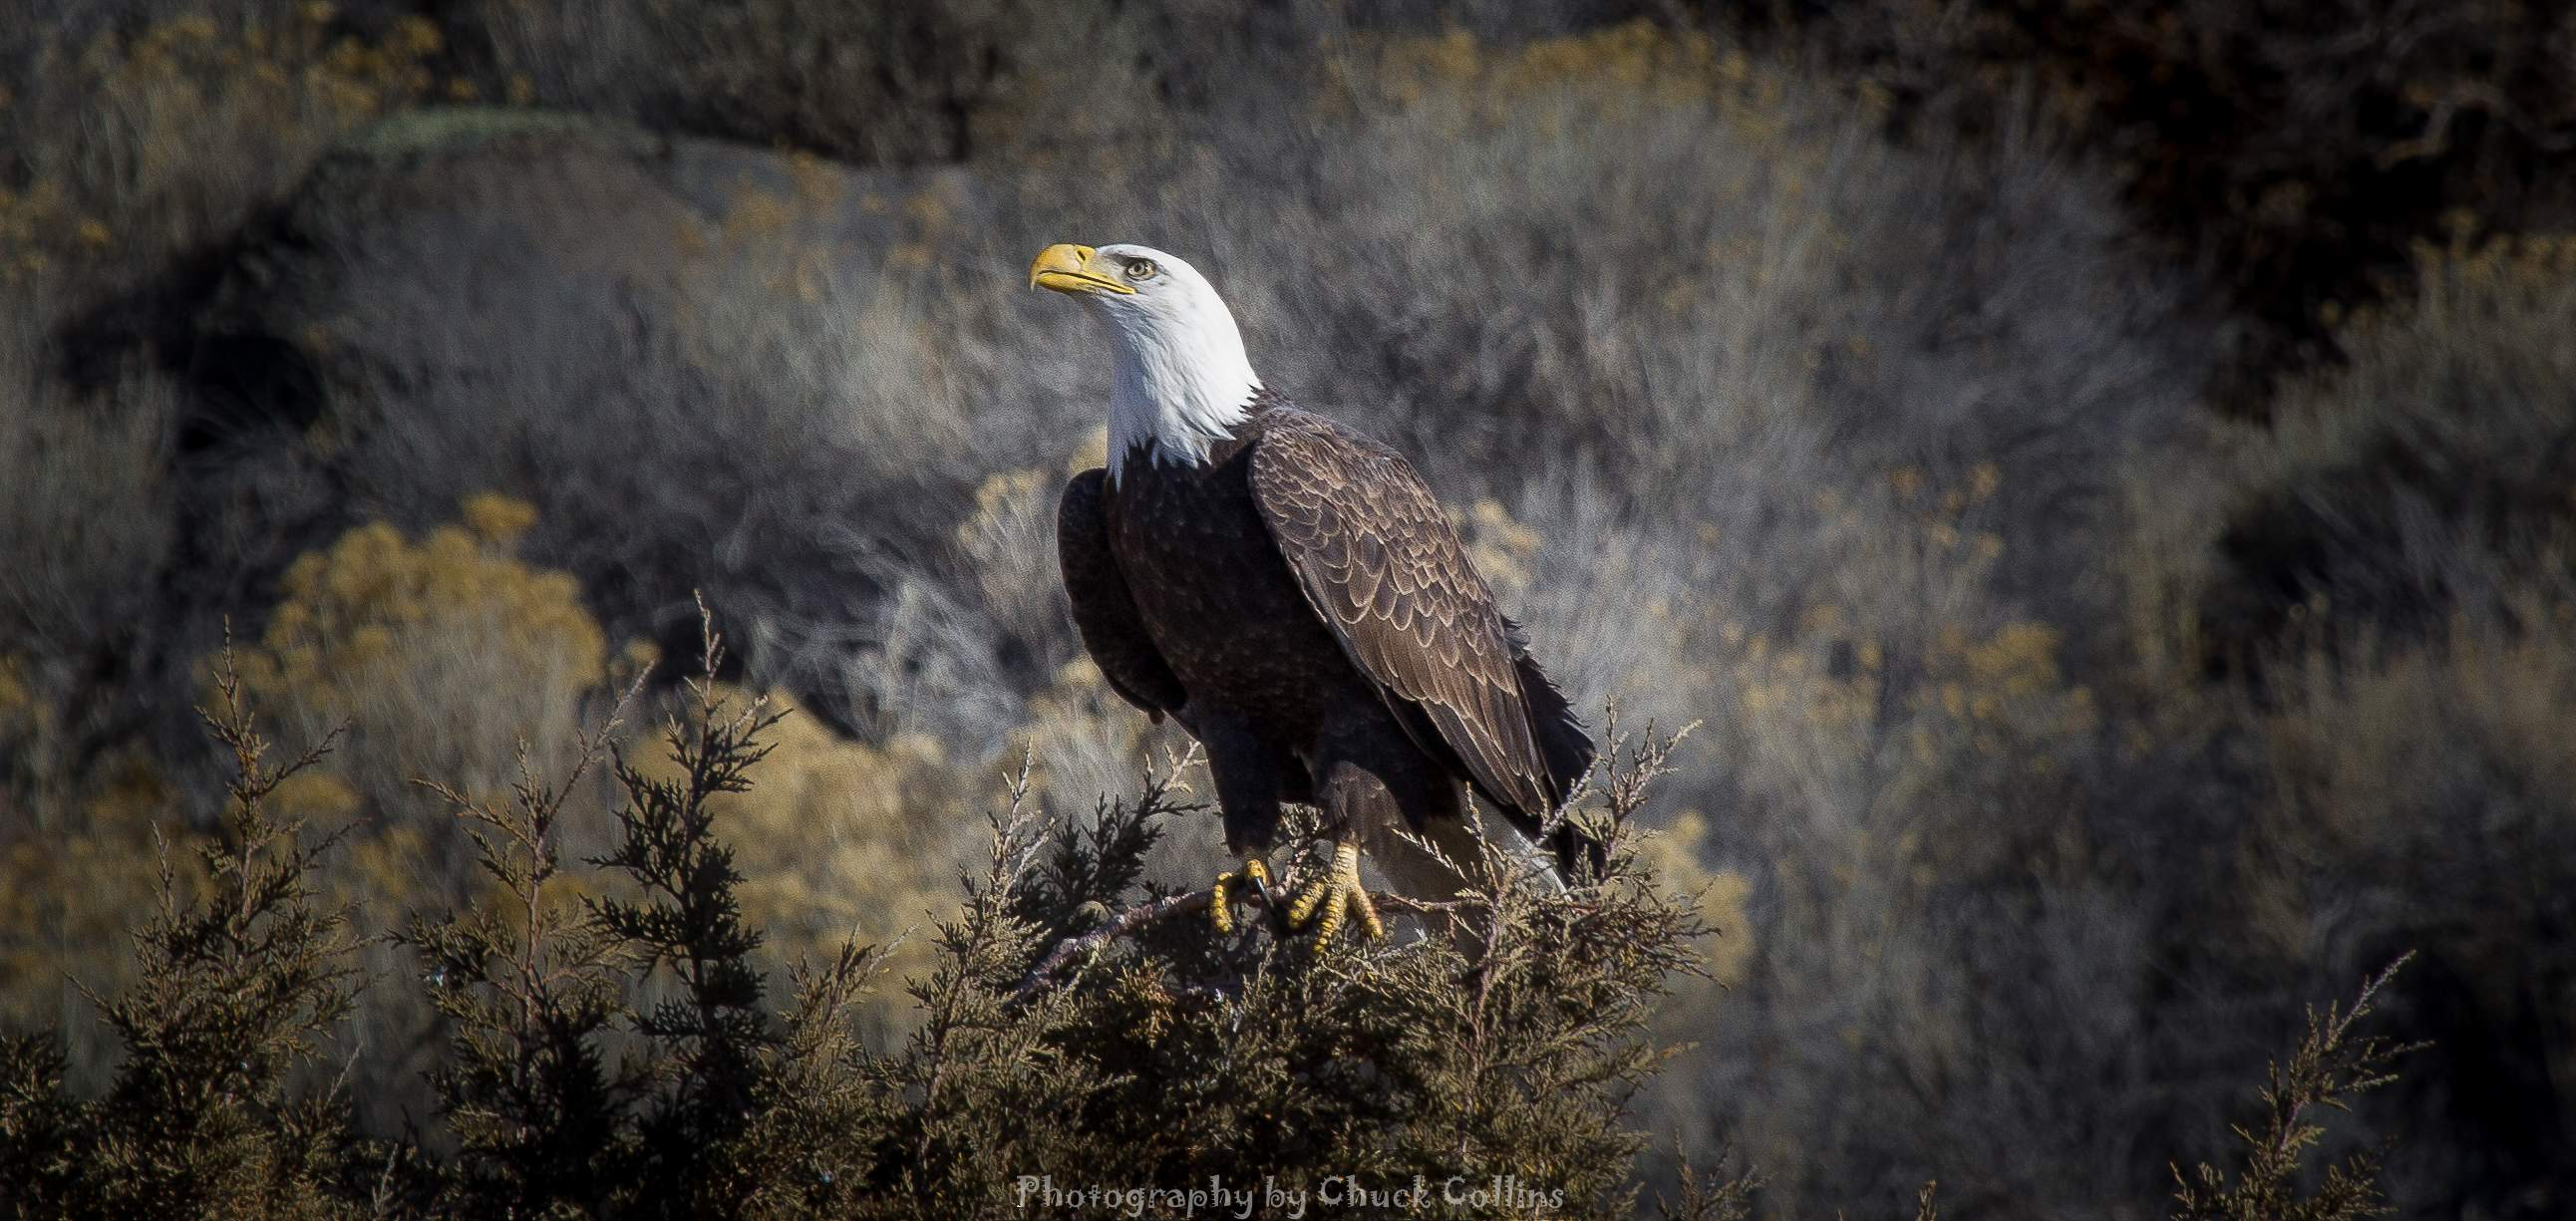 Fifth Place: Chuck Collins of Klamath Falls entered this photo of a bald eagle in a juniper tree on Lower Lake Road in Klamath Falls. - Photo by Chuck Collins